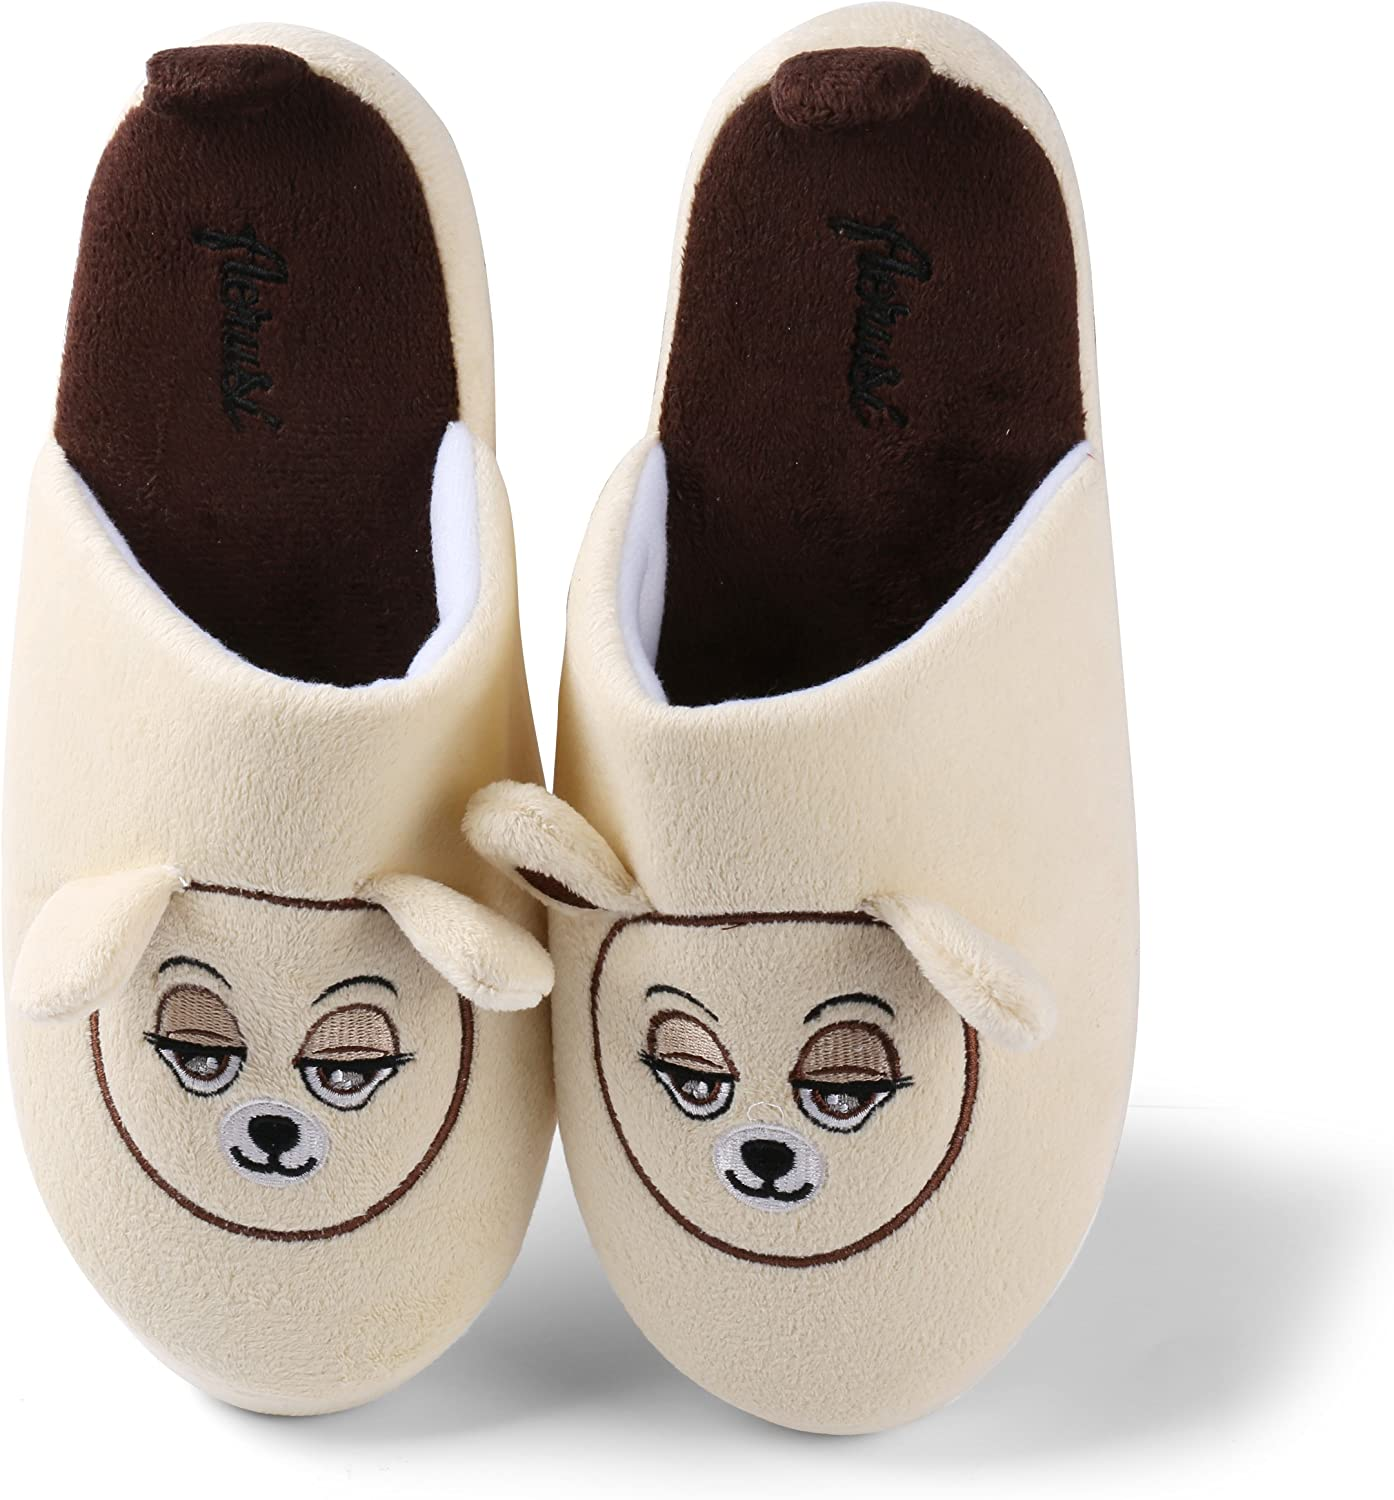 Aerusi SEC111041 Men or Women's Adult Teddy Bear Slippers, Beige, 9-10